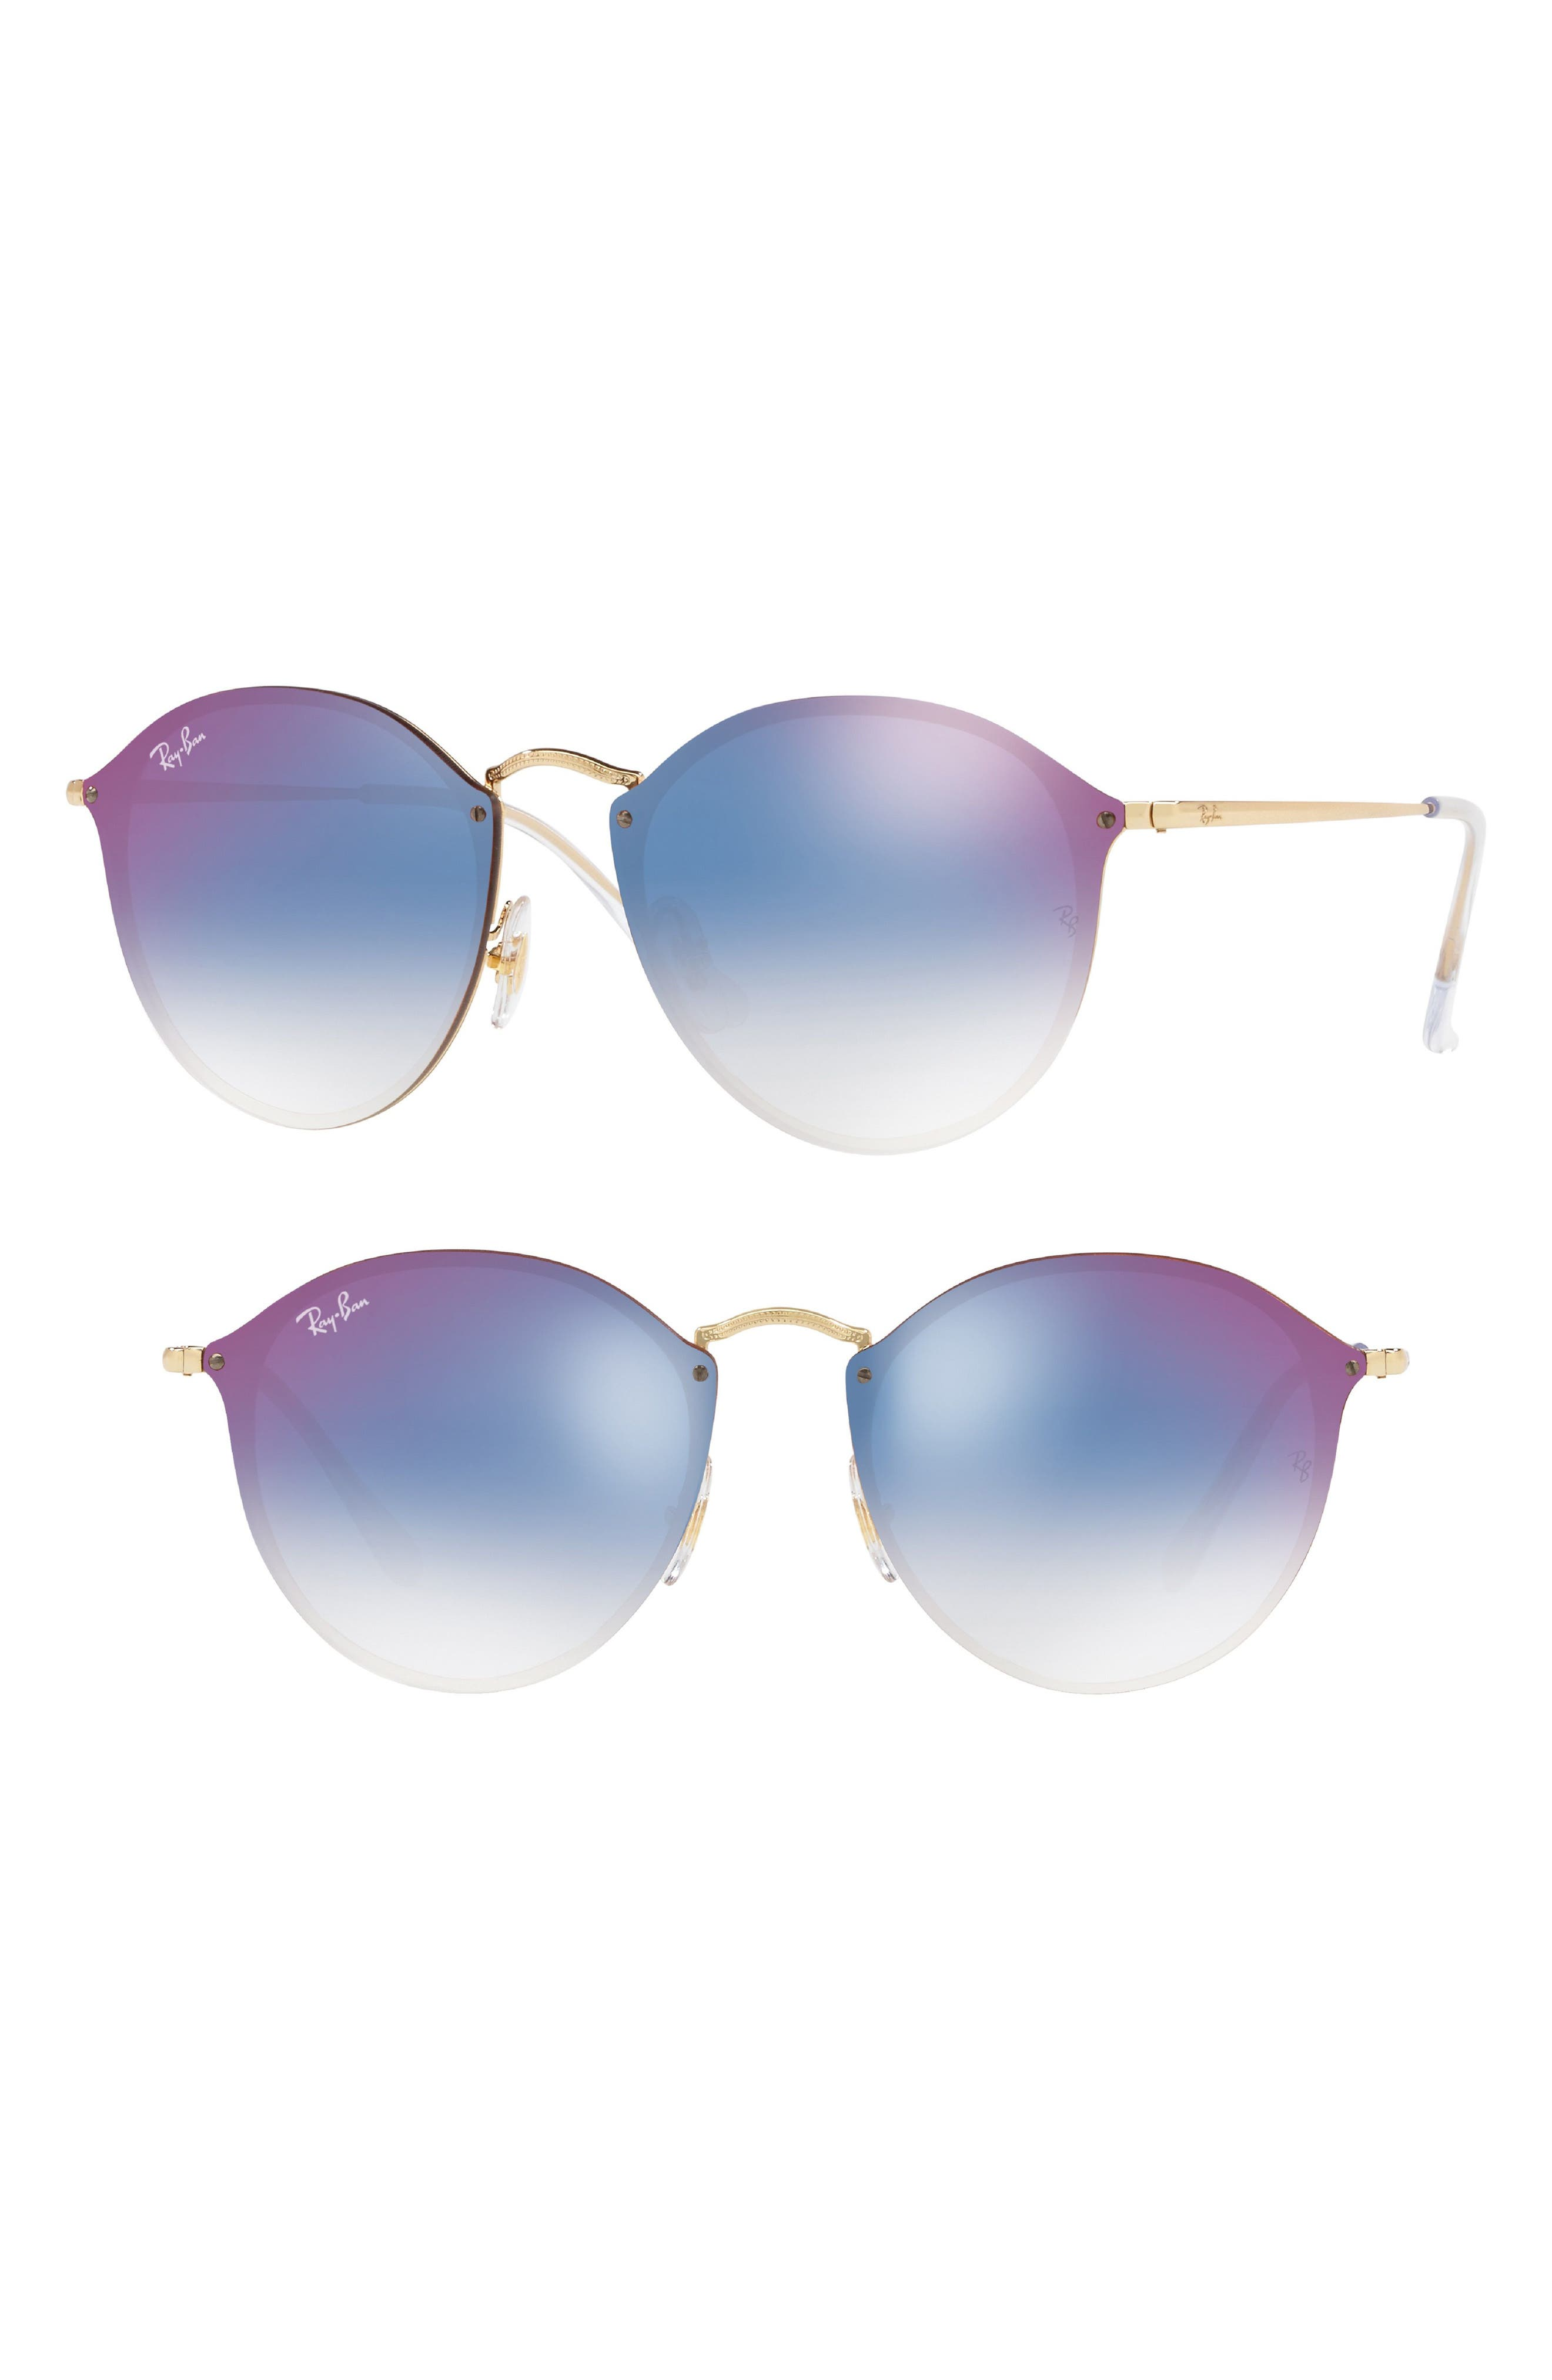 Blaze 59mm Round Mirrored Sunglasses,                             Main thumbnail 1, color,                             Gold